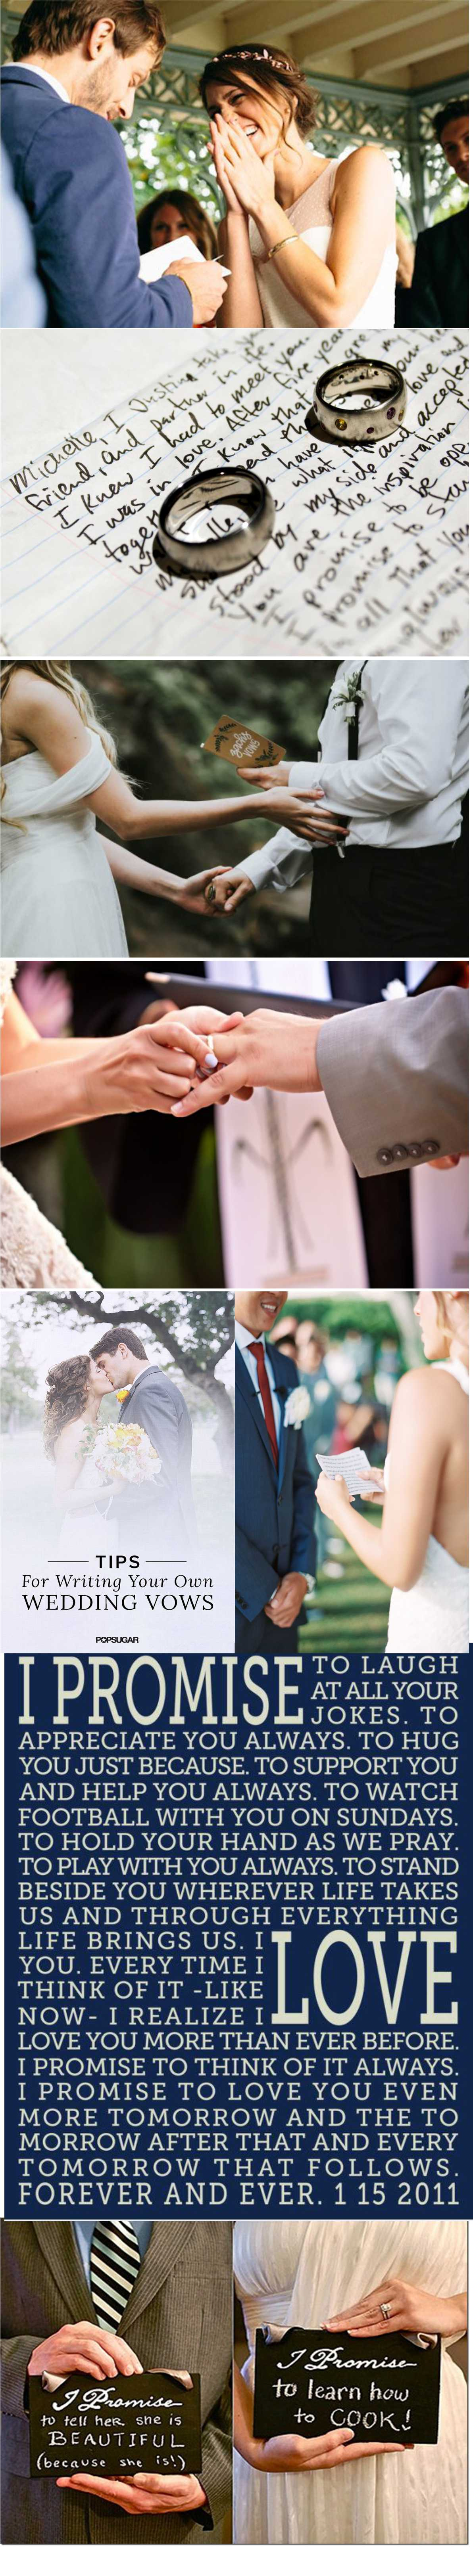 New Wedding vows tips 2018